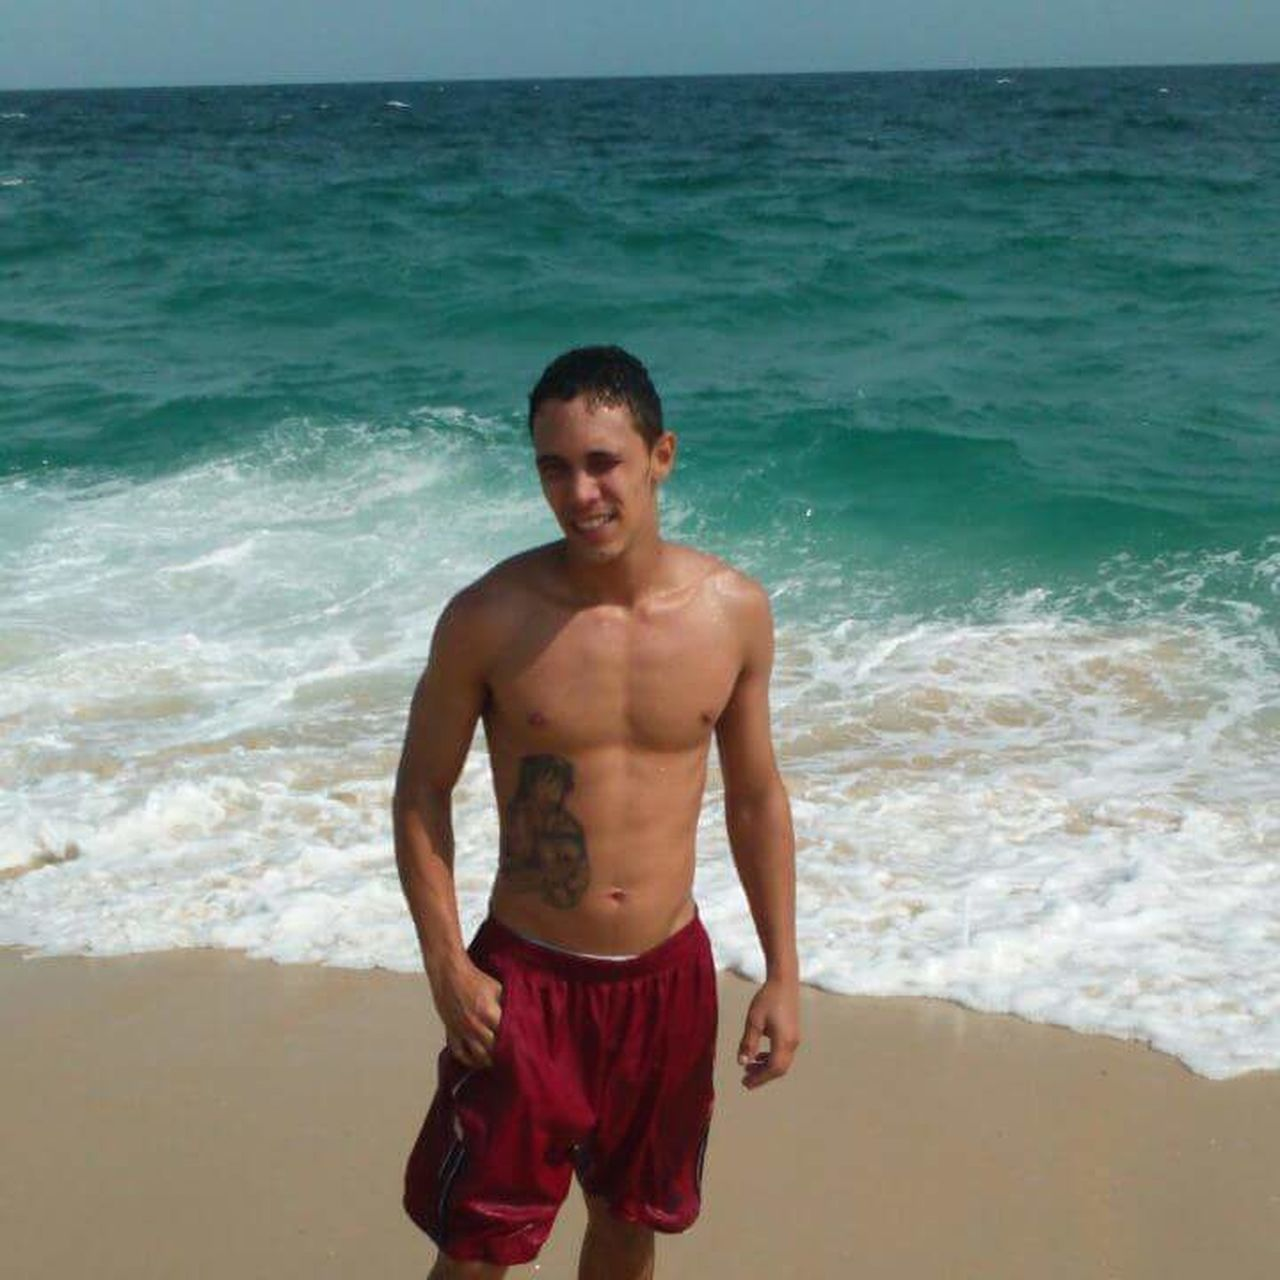 sea, shirtless, beach, portrait, one person, looking at camera, standing, wave, vacations, sand, one man only, front view, smiling, day, outdoors, nature, sport, only men, water, muscular build, young adult, people, adult, adults only